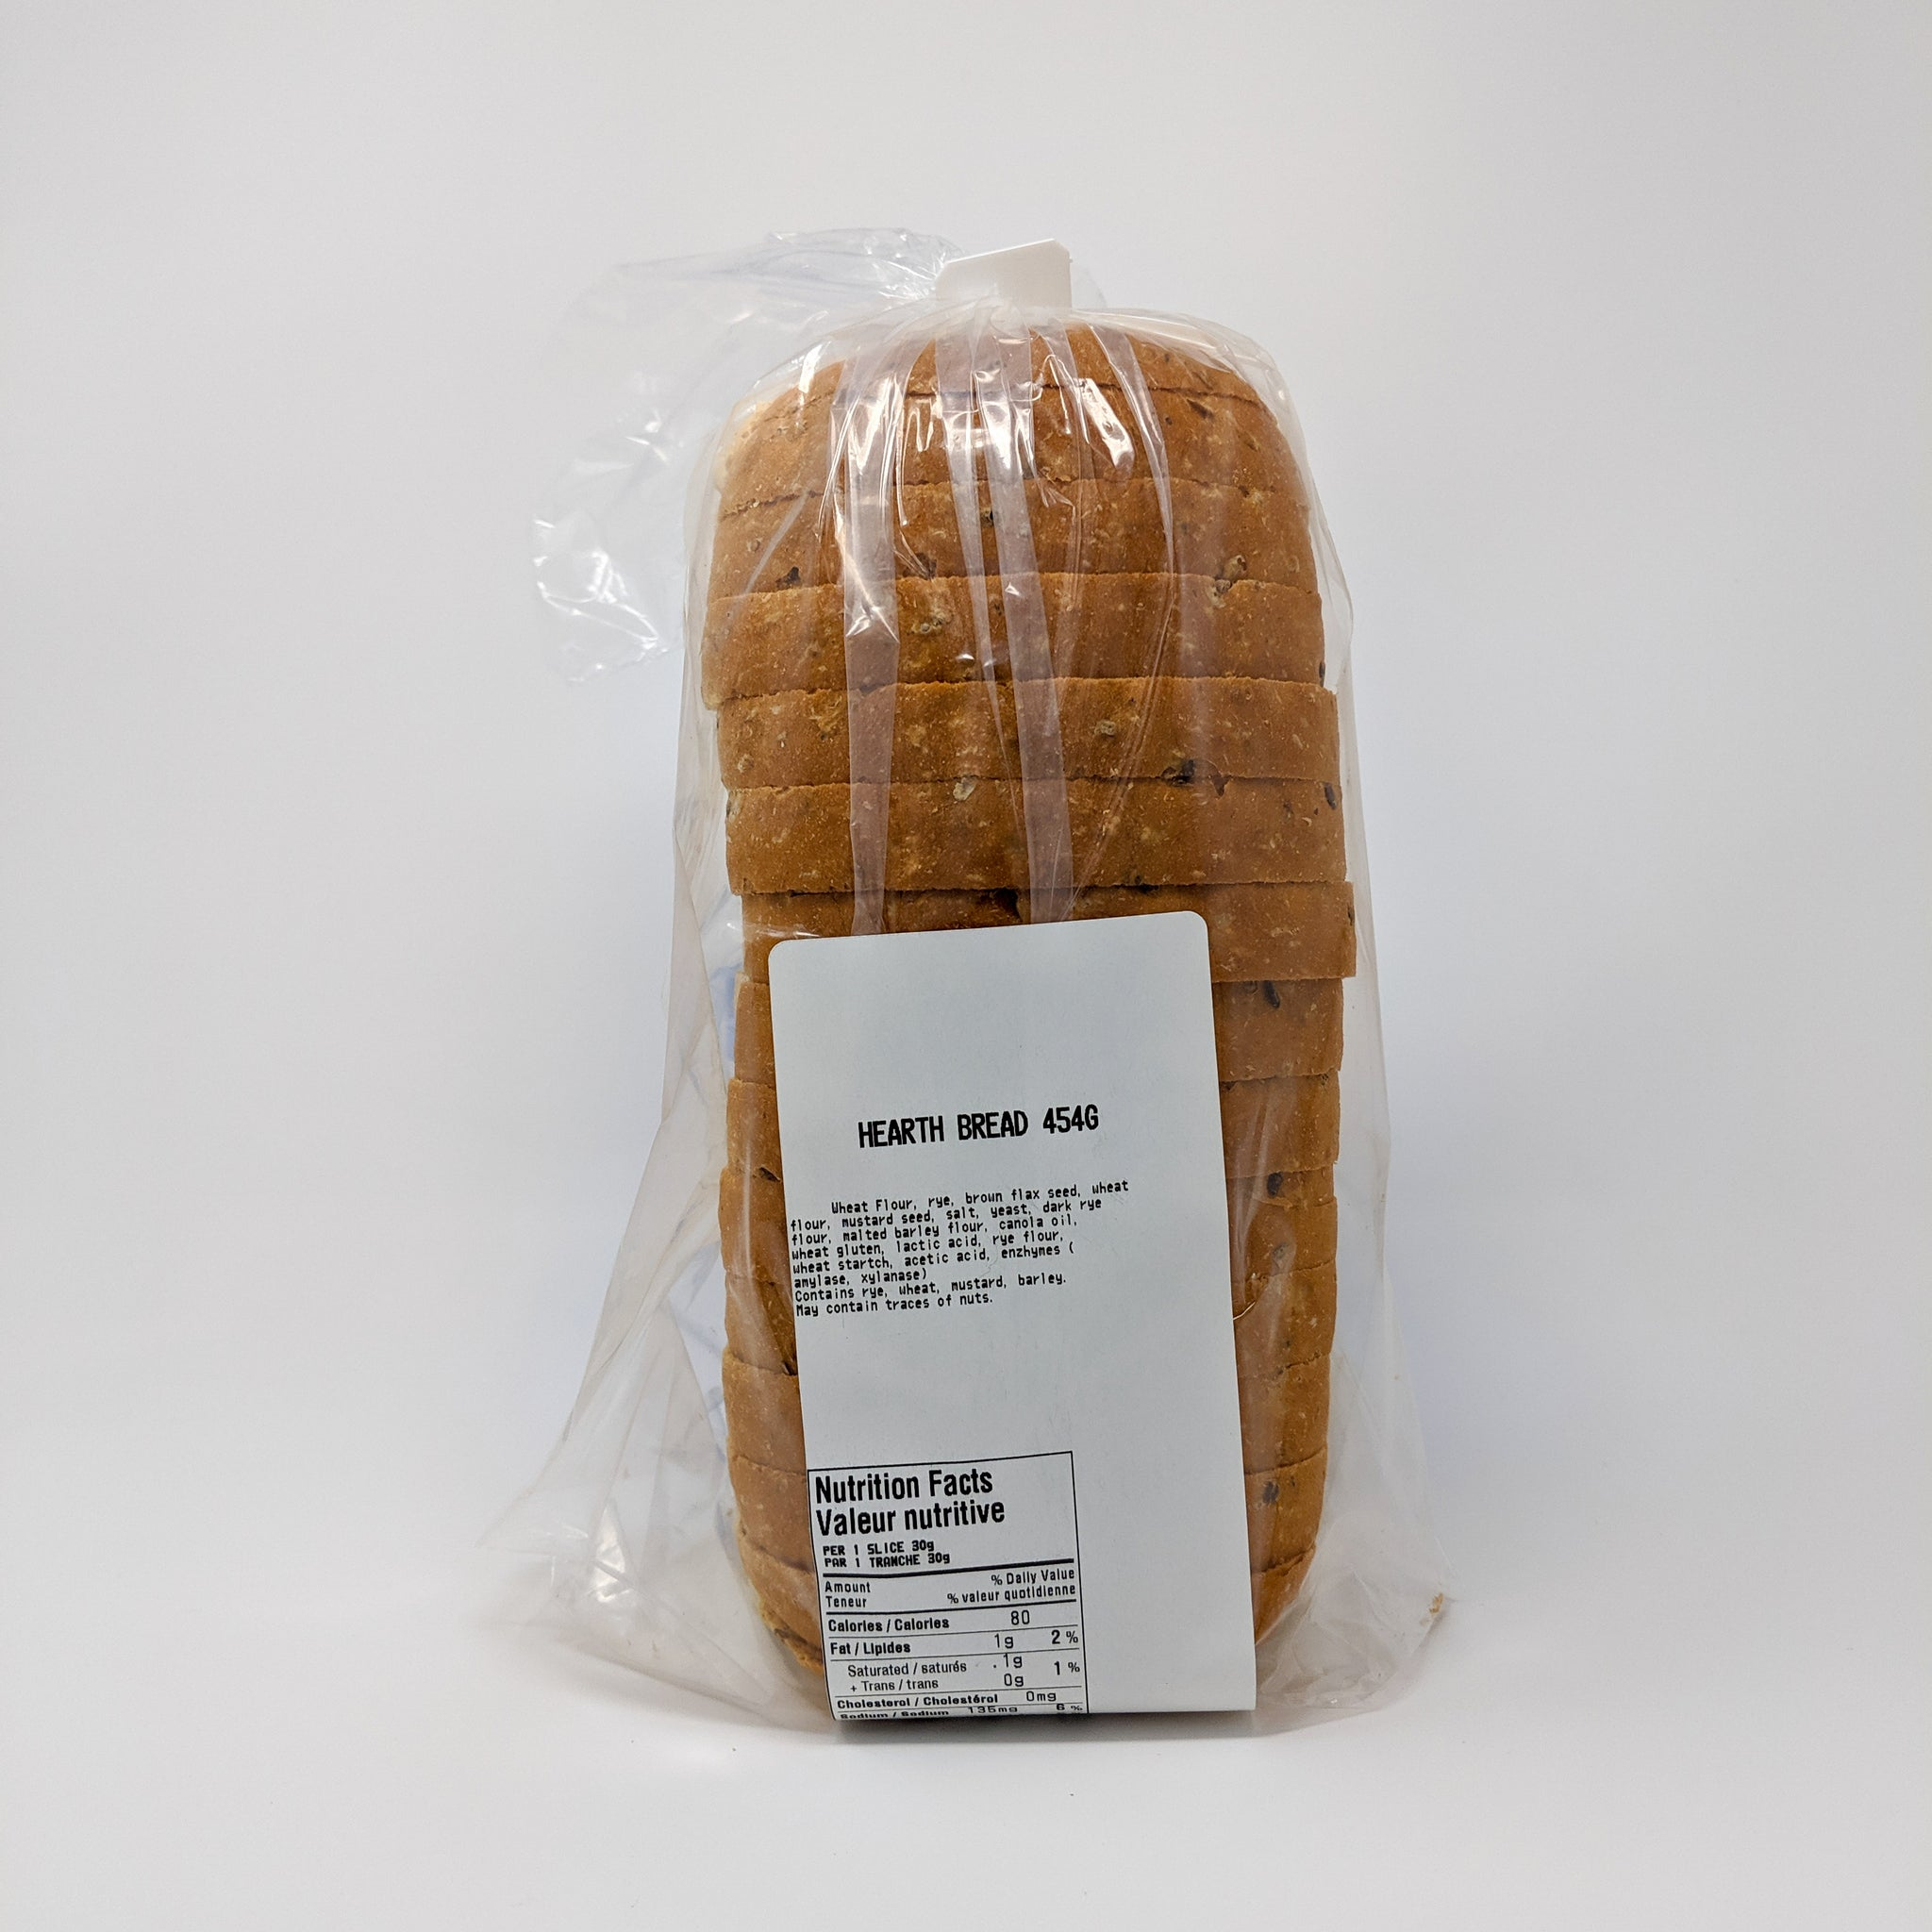 Hearth Bread Small (454g) - St-Pierre